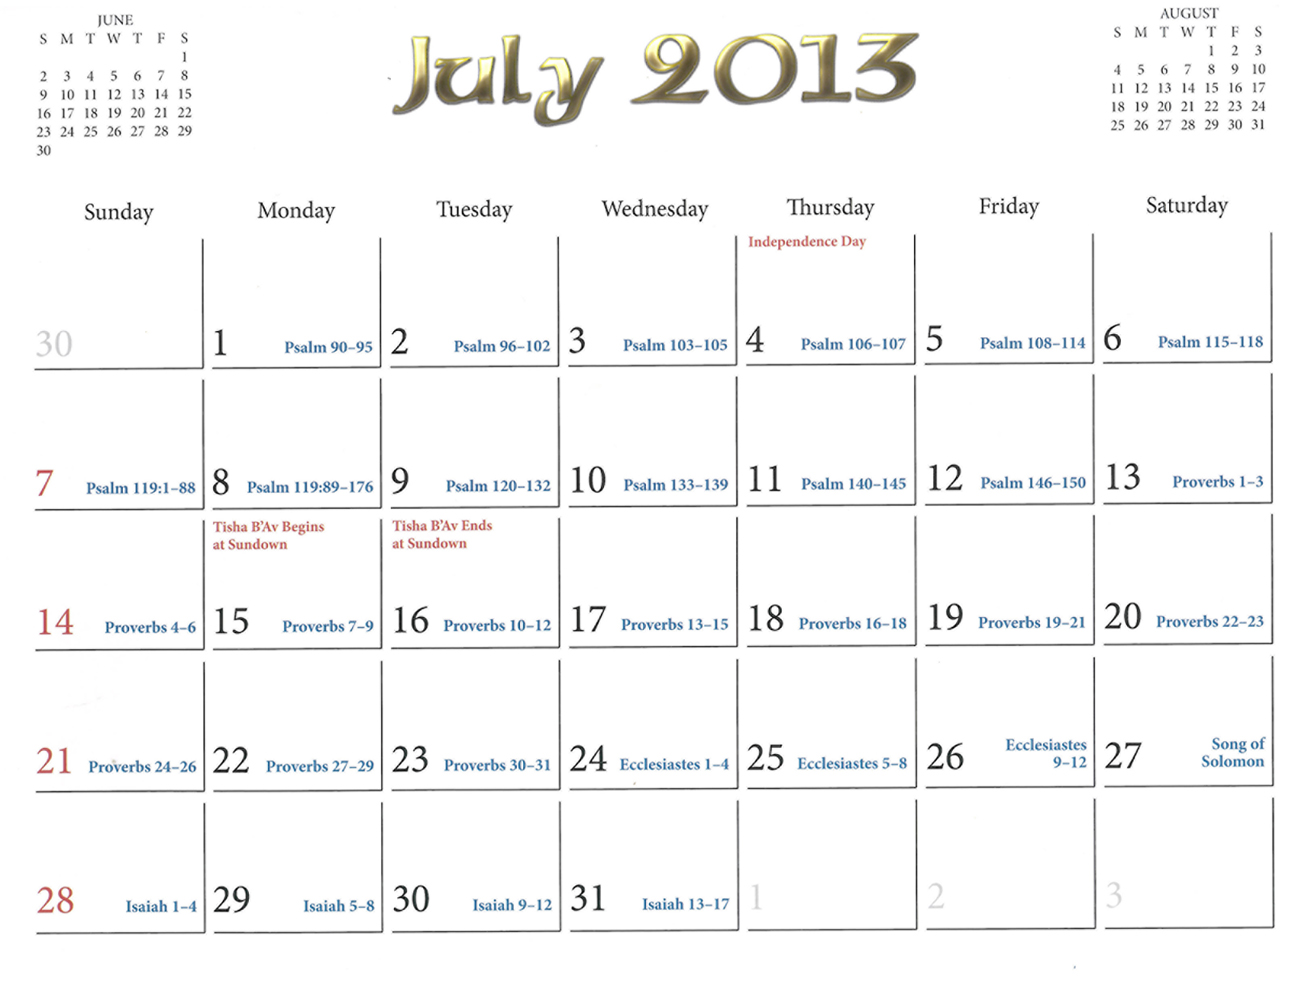 2013 Prophecy Calendar: July - Signs From the Cross That Jesus Was the Promised Saviour